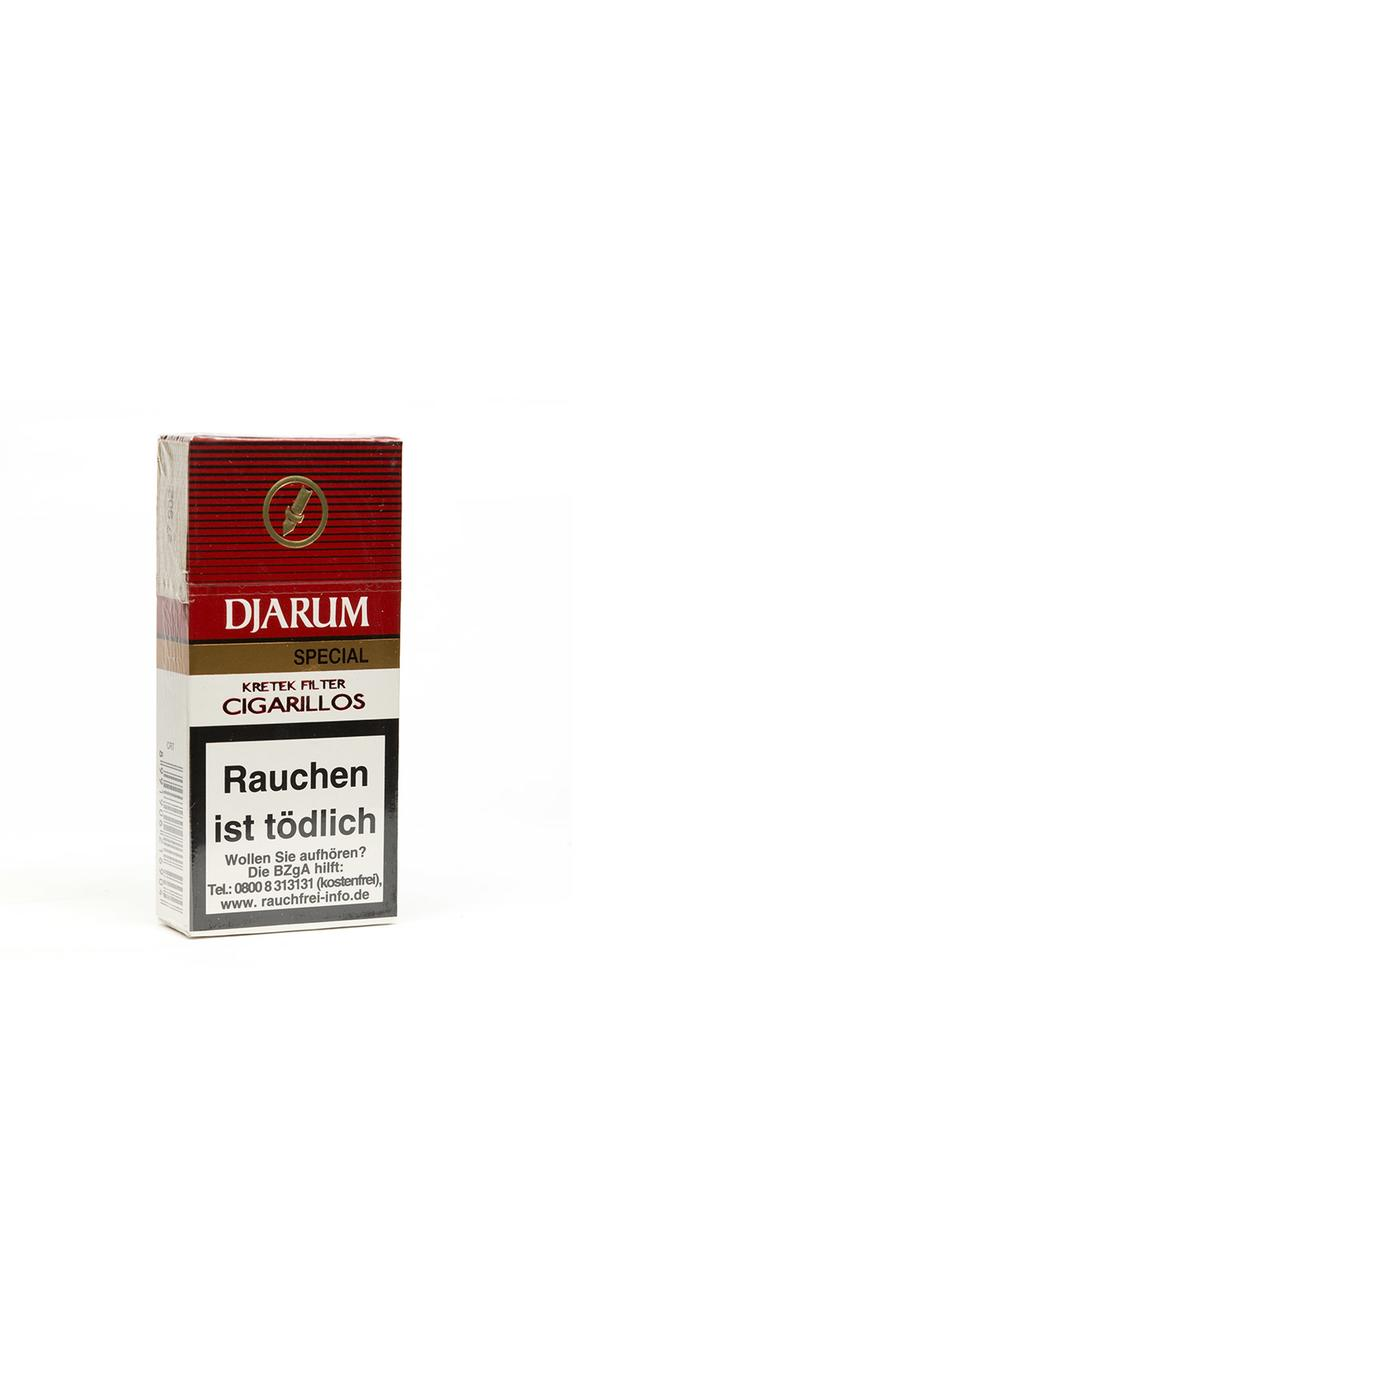 Djarum Special Kretek Filter Cigarillos